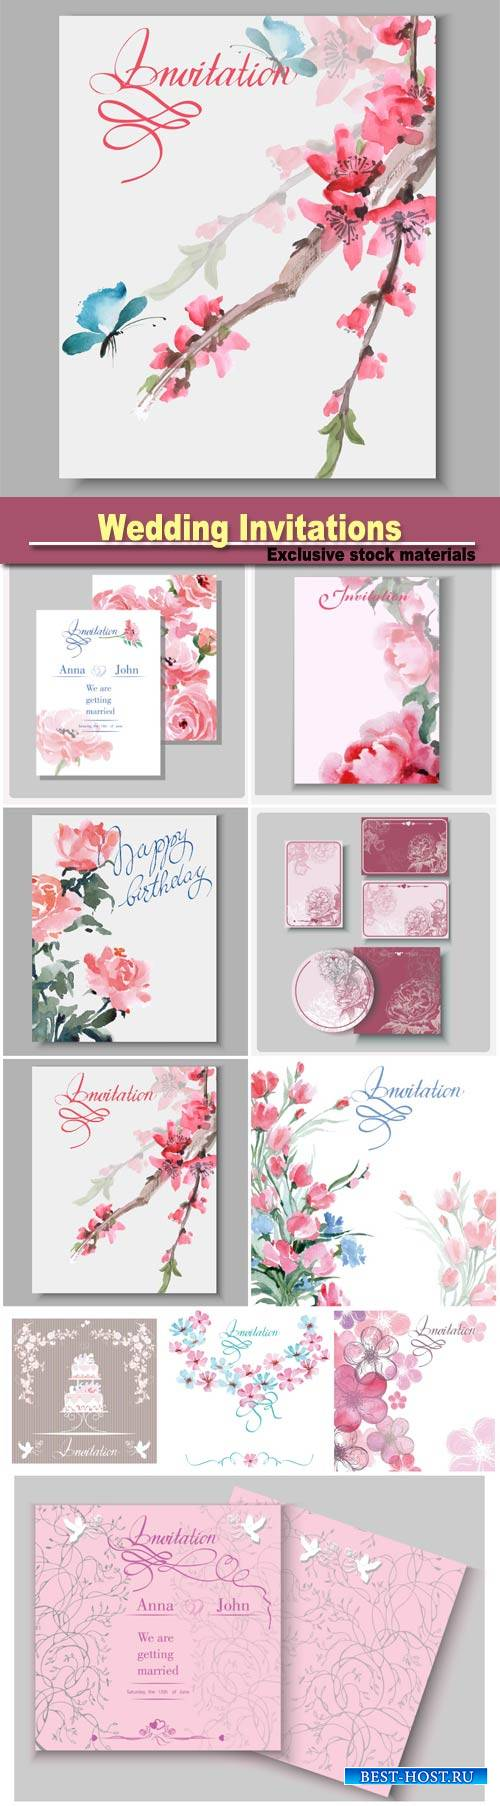 Wedding Invitations with beautiful flowers and butterflies